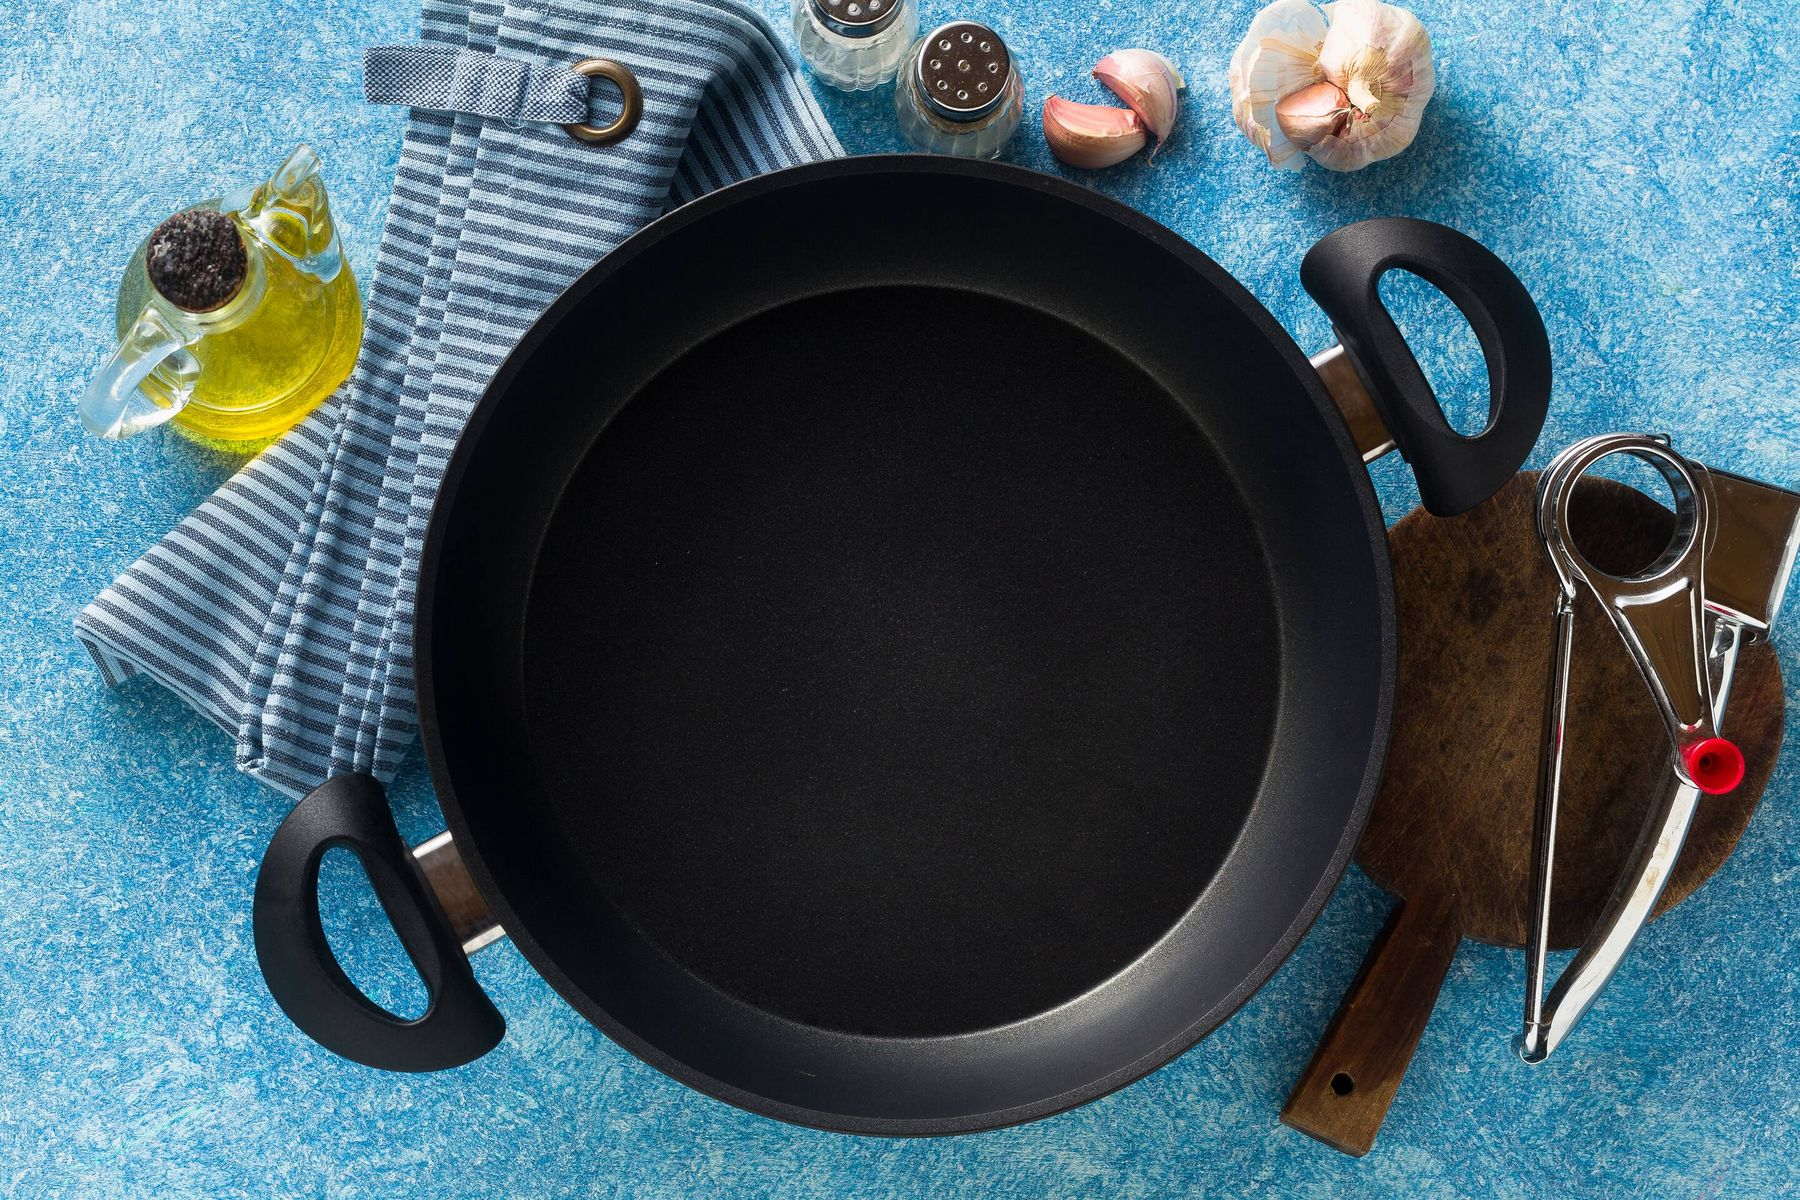 Try These Tips to Maintain Your Non-Stick Cookware